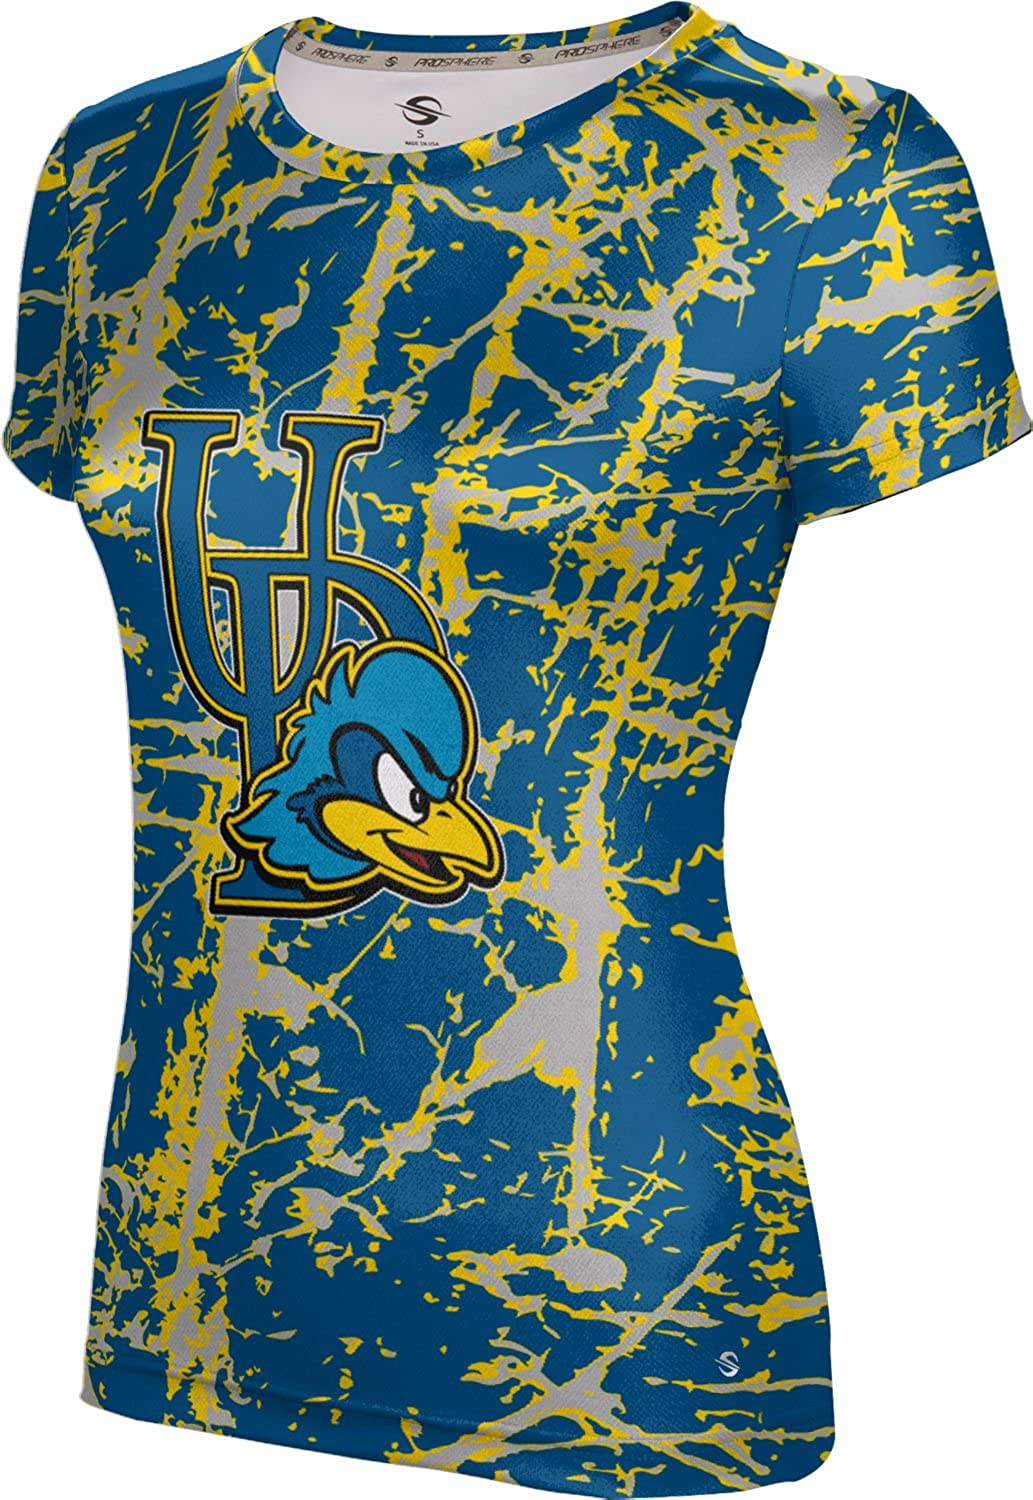 ProSphere University New Orleans Mall of Special Campaign Delaware T-Shirt Dis Performance Girls'